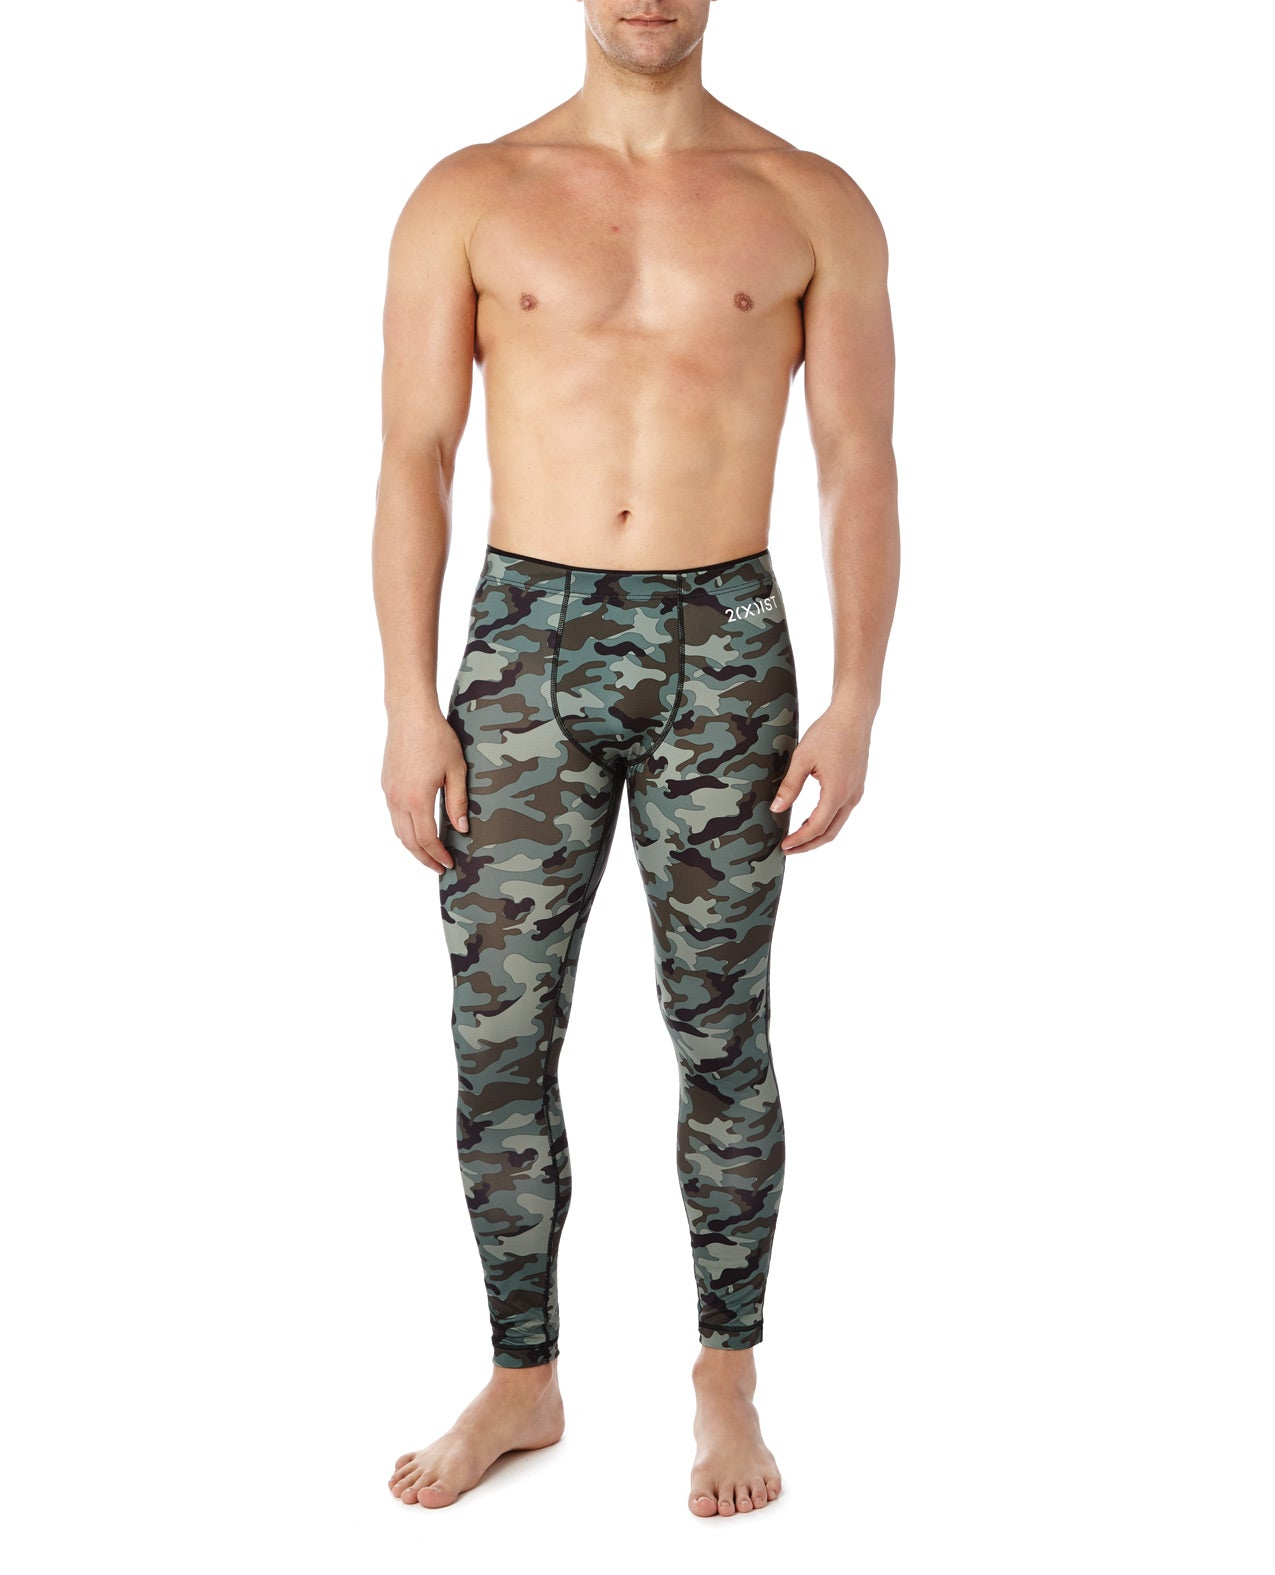 2XIST Performance Legging - Green Camo